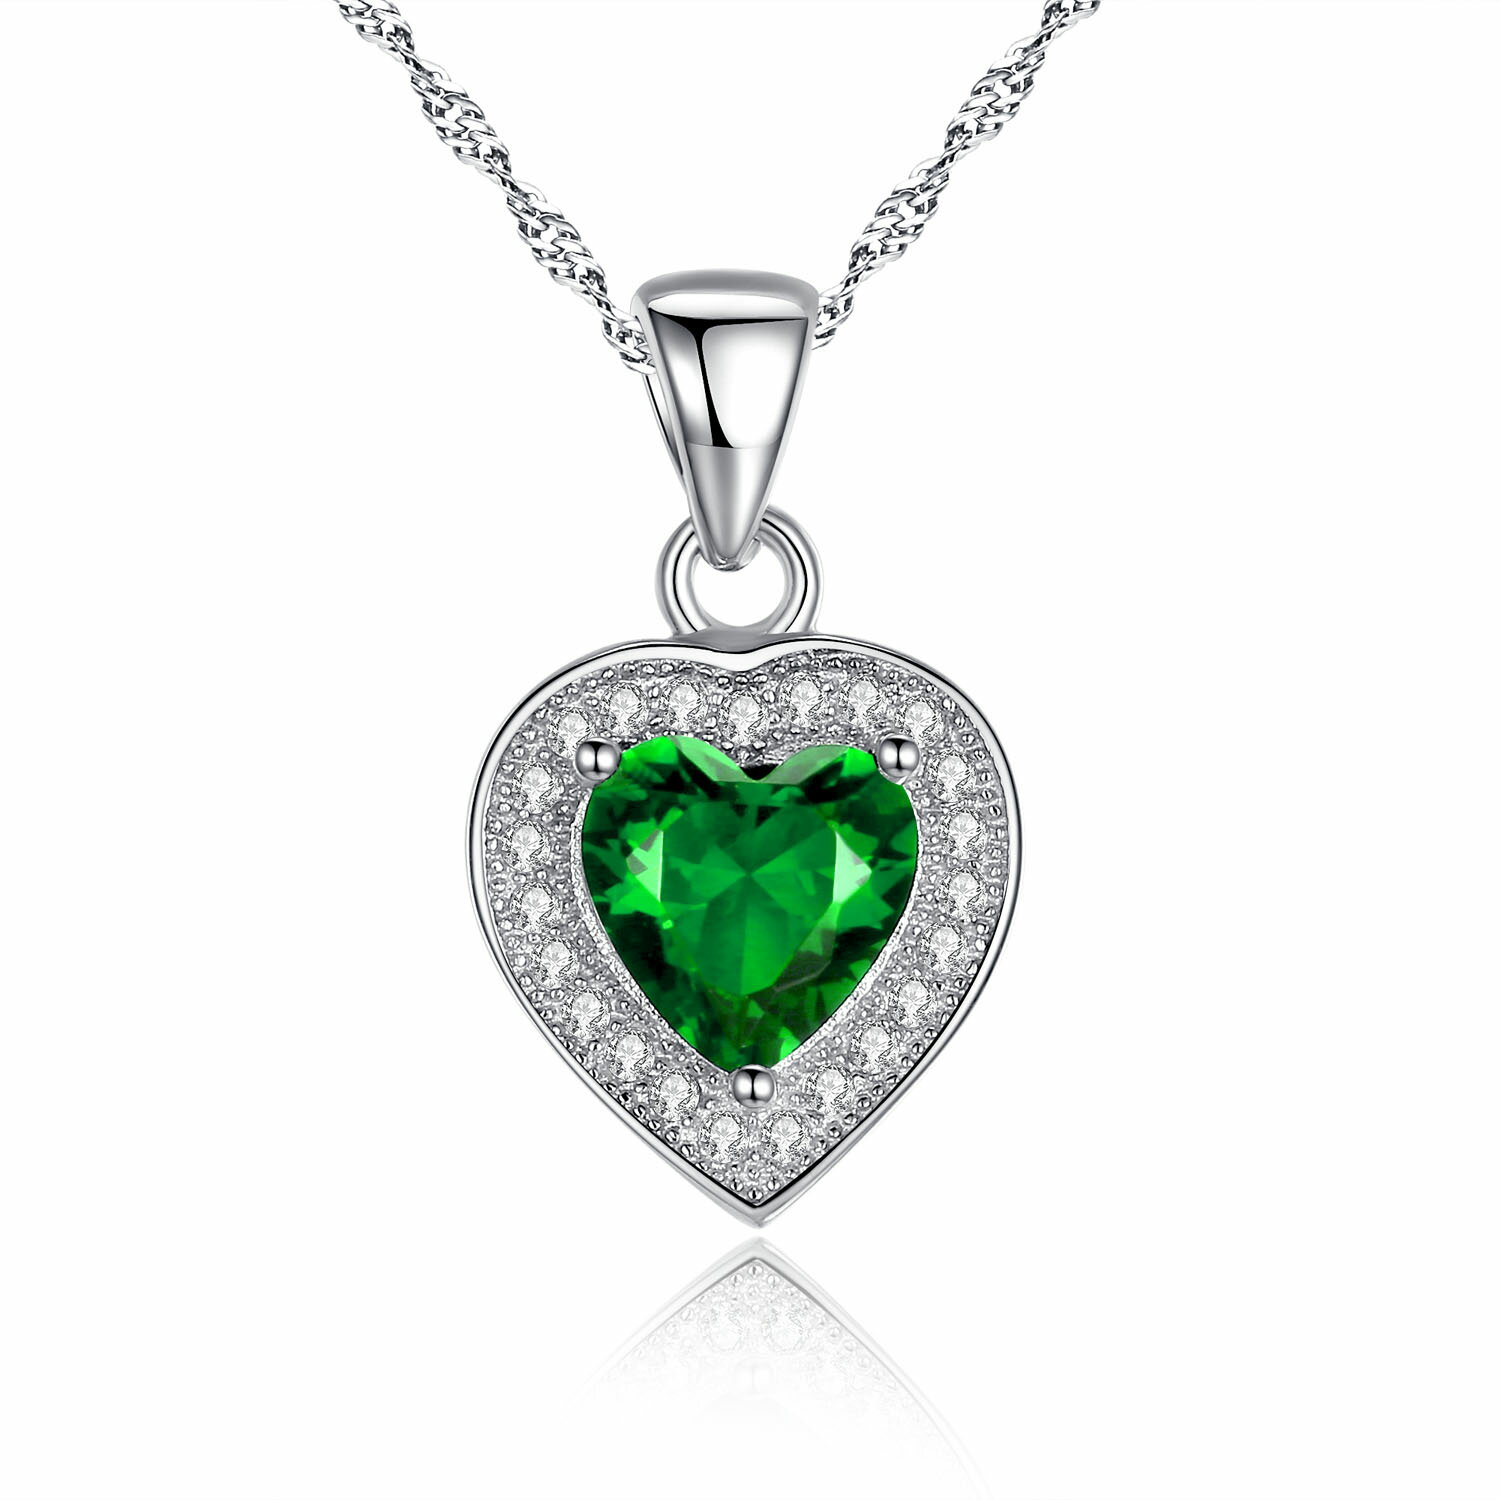 with layer hammered matter jewellery picture mixed charm triple metal of necklace heart jewelry